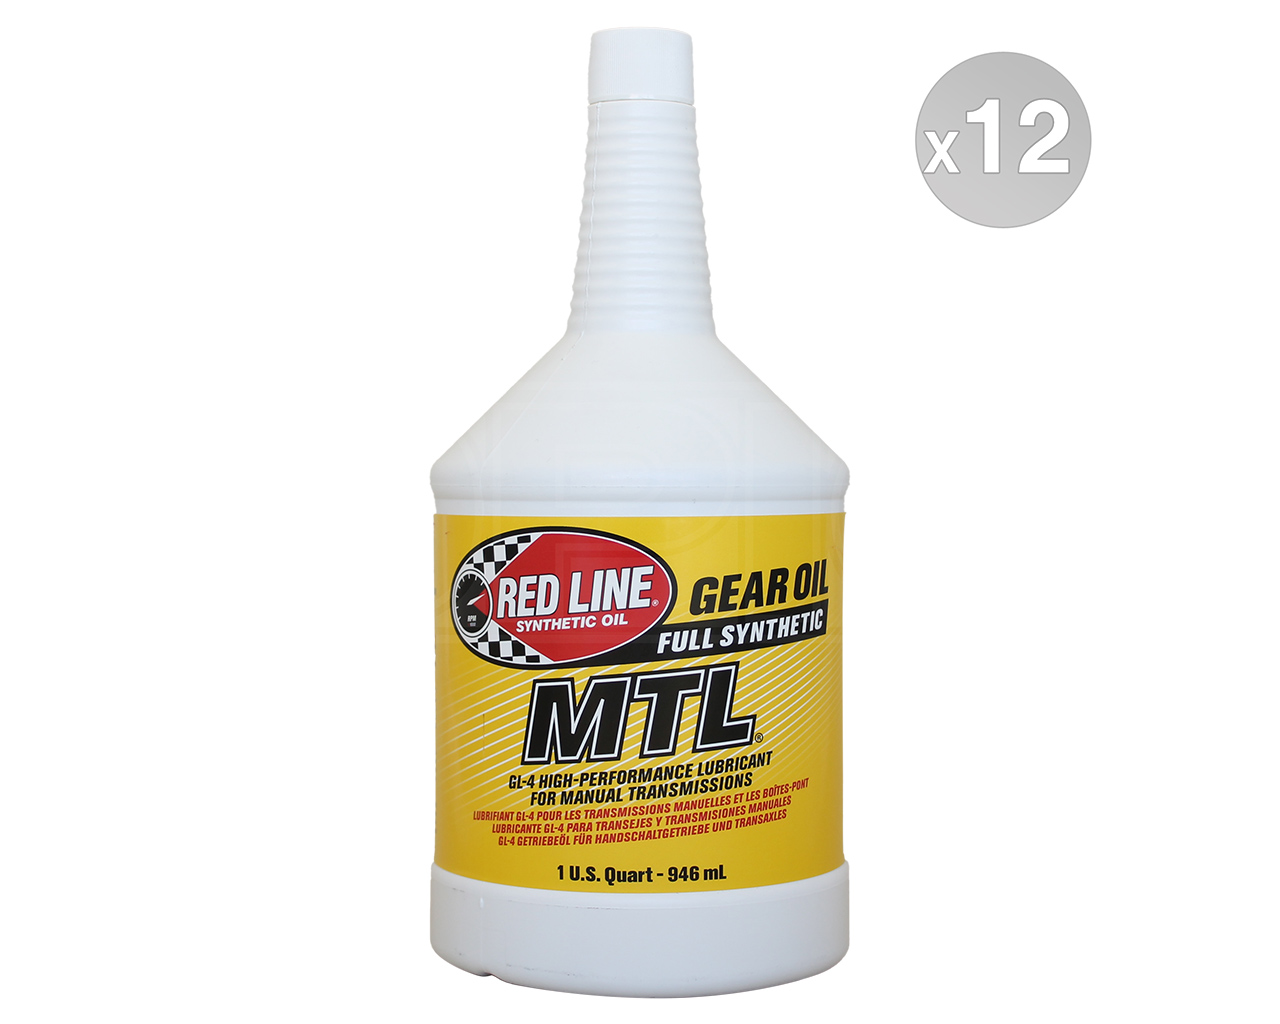 RED LINE Synthetic Manual Transmission Lubricant MTL 75W-80 GL4